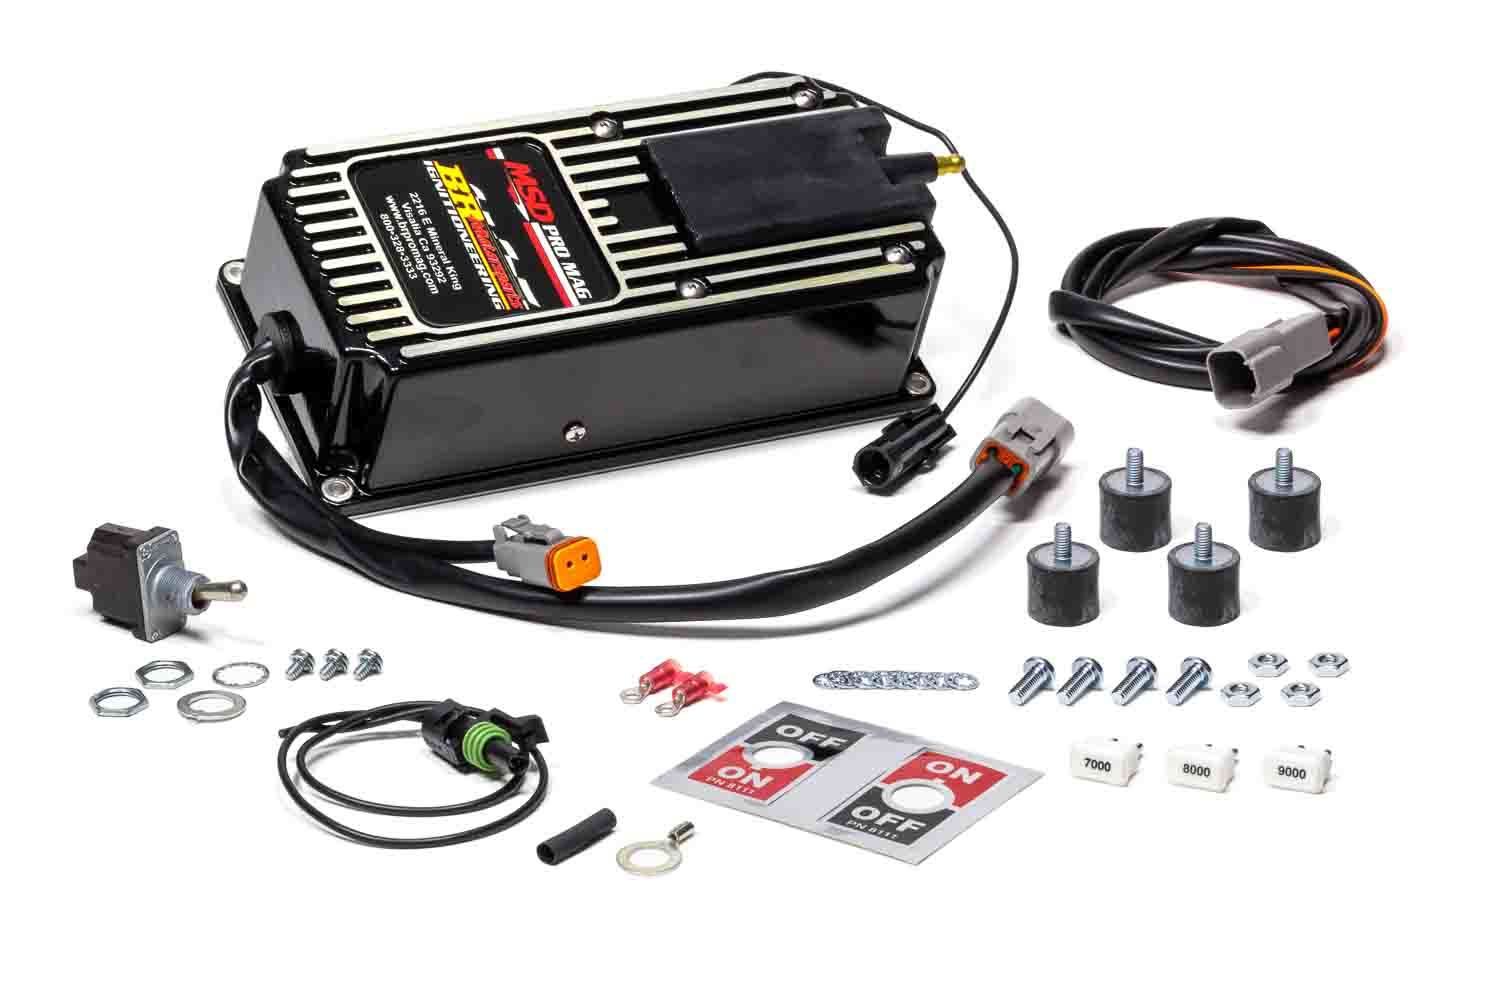 King Racing Products ING8106-BLK Ignition Box, Pro Mag, Electronic Points Box, Rev Limiter, MSD Pro Mag 12, Black, Each